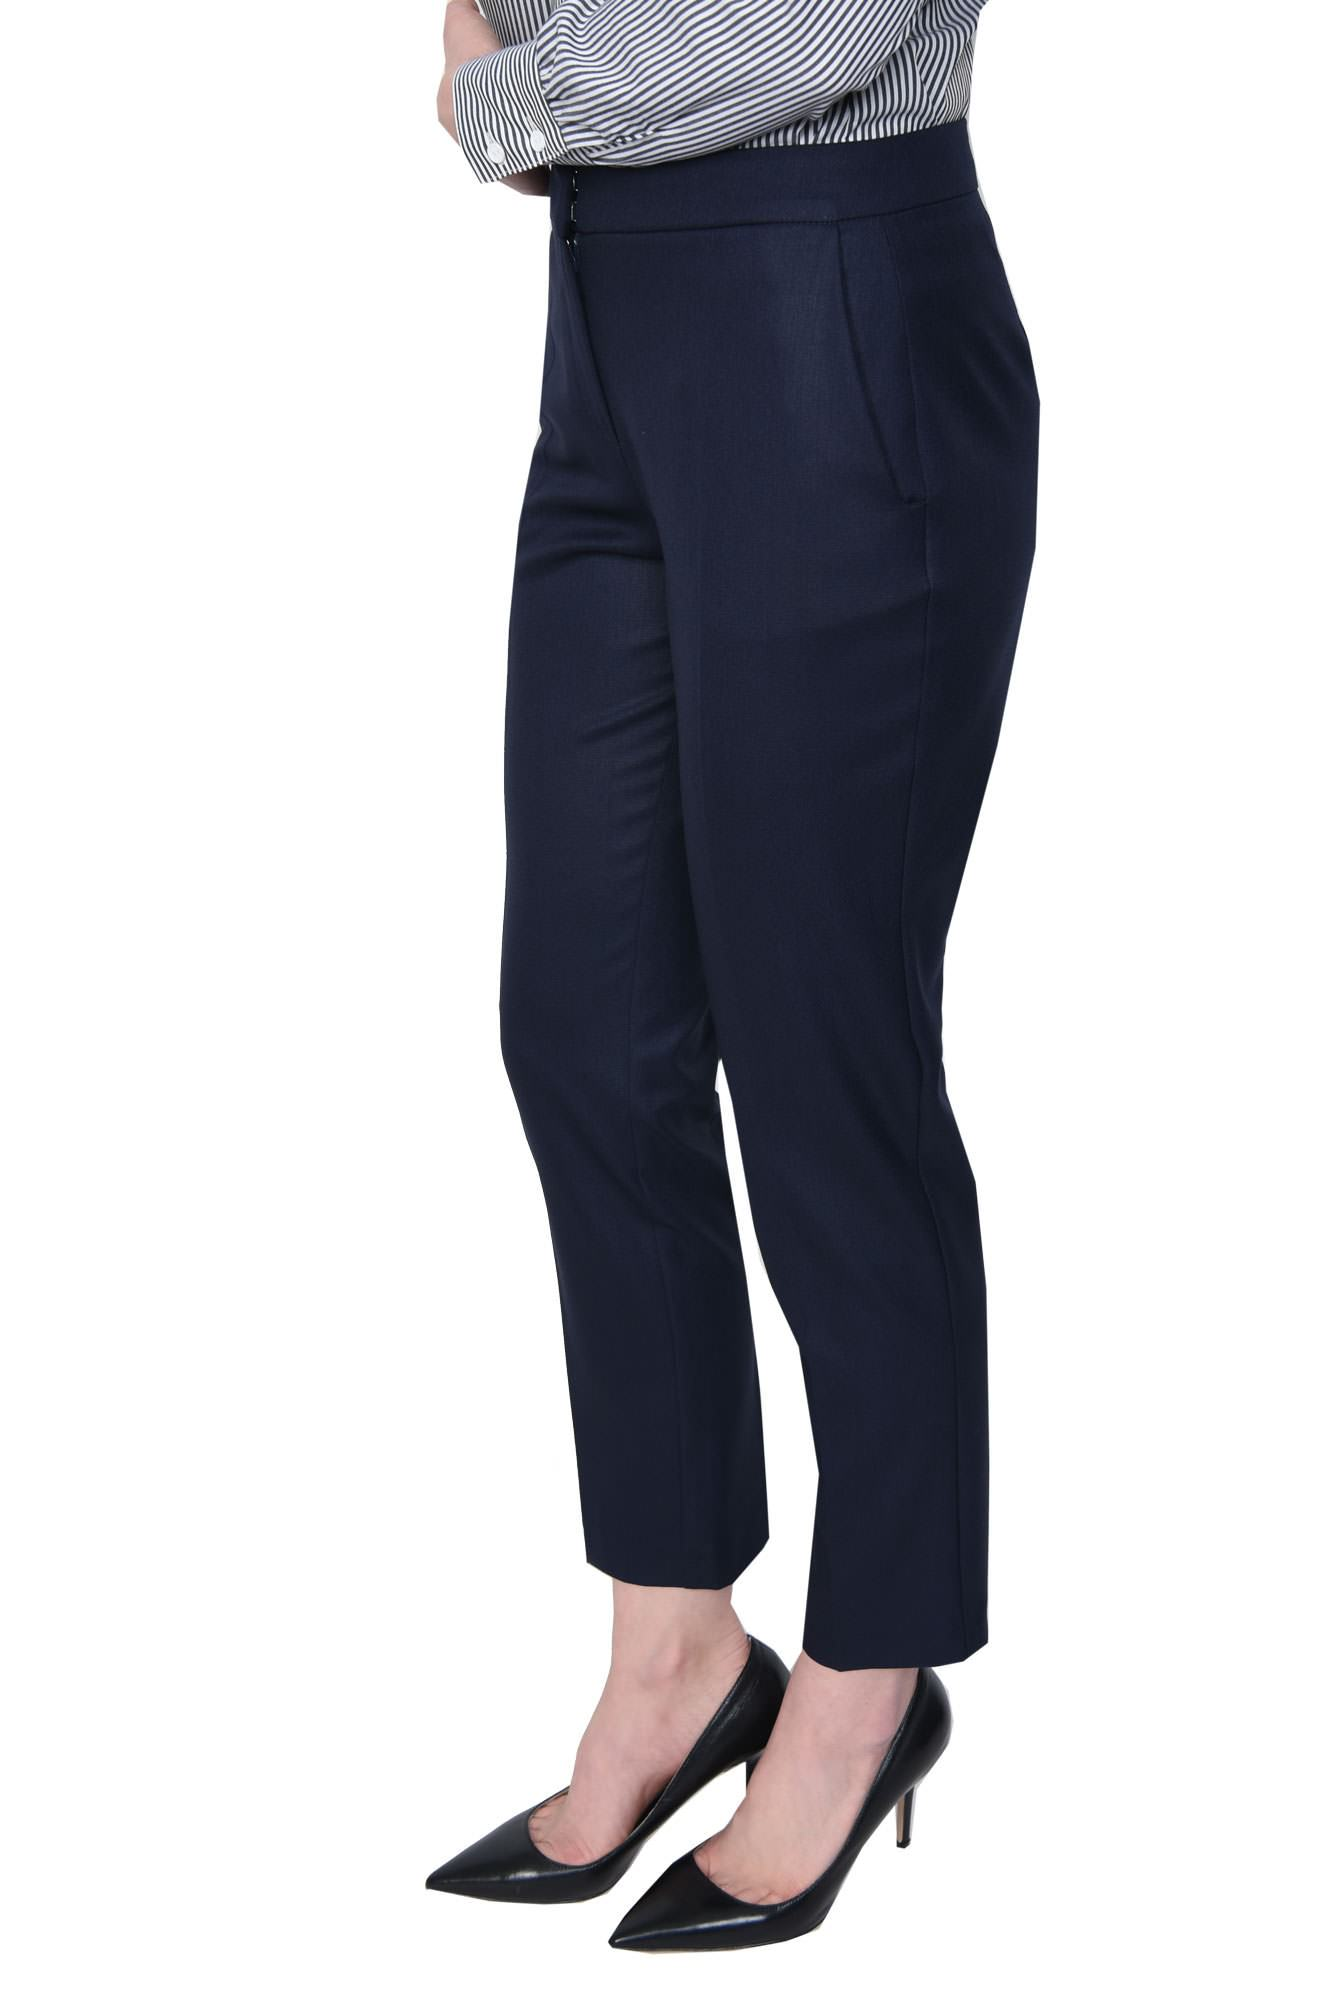 PANTALON OFFICE CONIC PT 143-BLEUMARIN